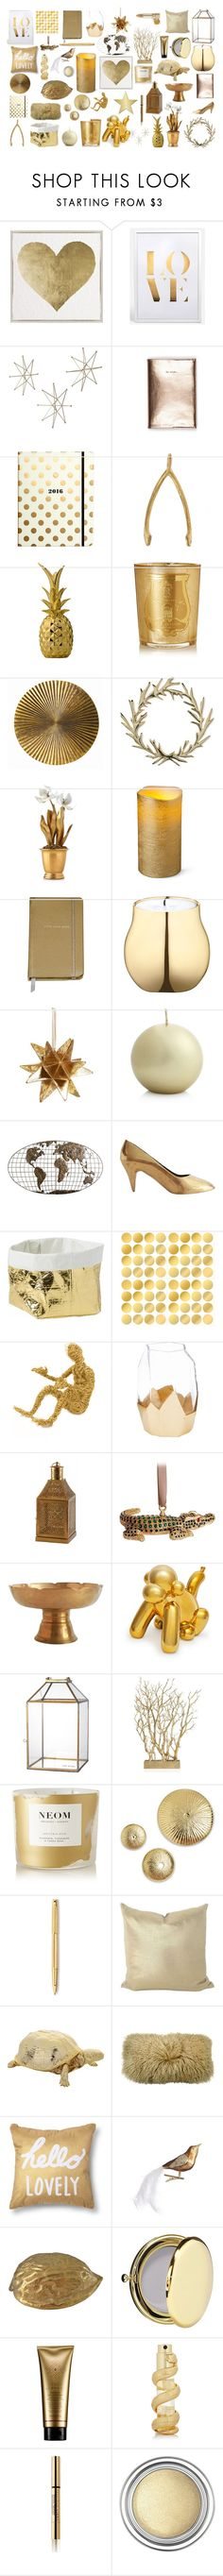 """Gold fillers"" by juliehalloran ❤ liked on Polyvore featuring Oliver Gal Artist Co., WALL, Kate Spade, Global Views, Bloomingville, Cire Trudon, Arteriors, Lunares, Tommy Mitchell and Improvements"